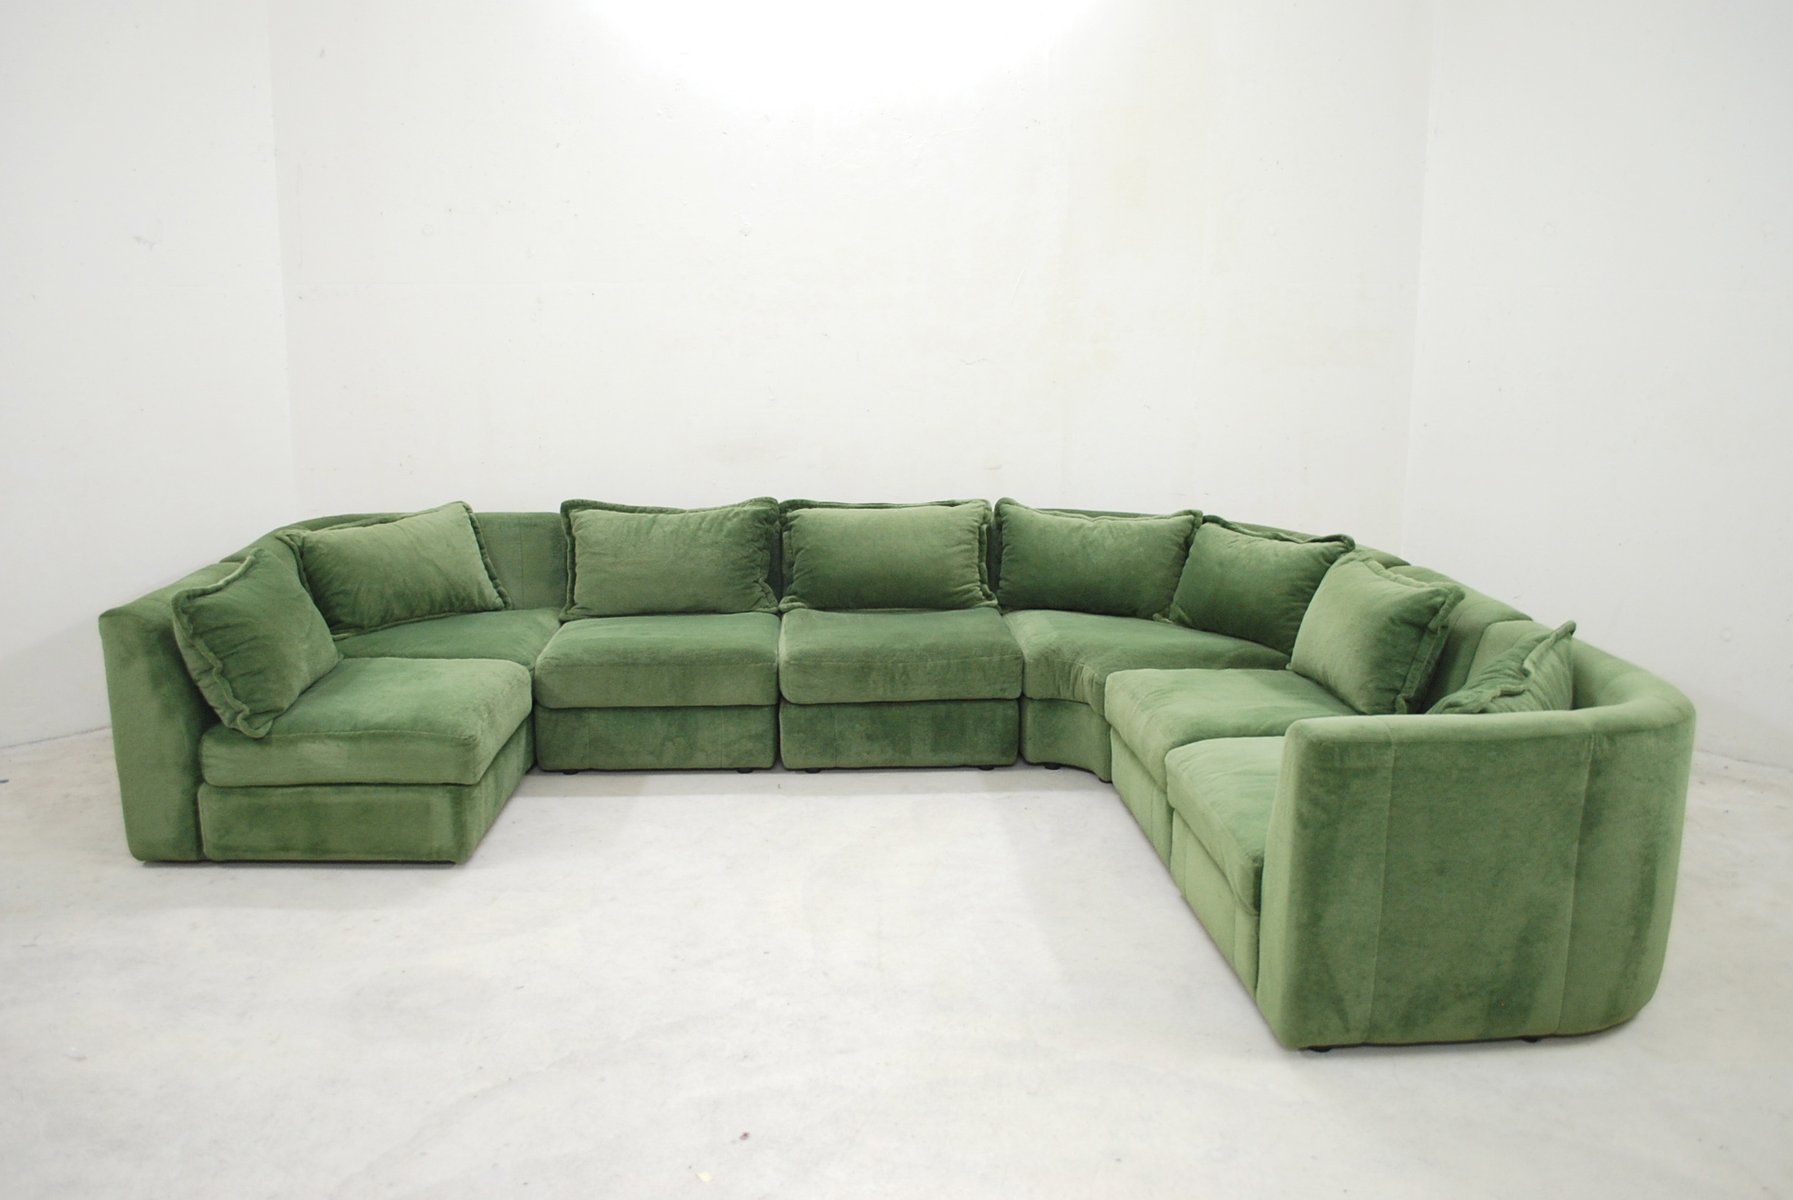 Vintage green modular sofa from rolf benz for sale at pamono for Sofa benz rolf